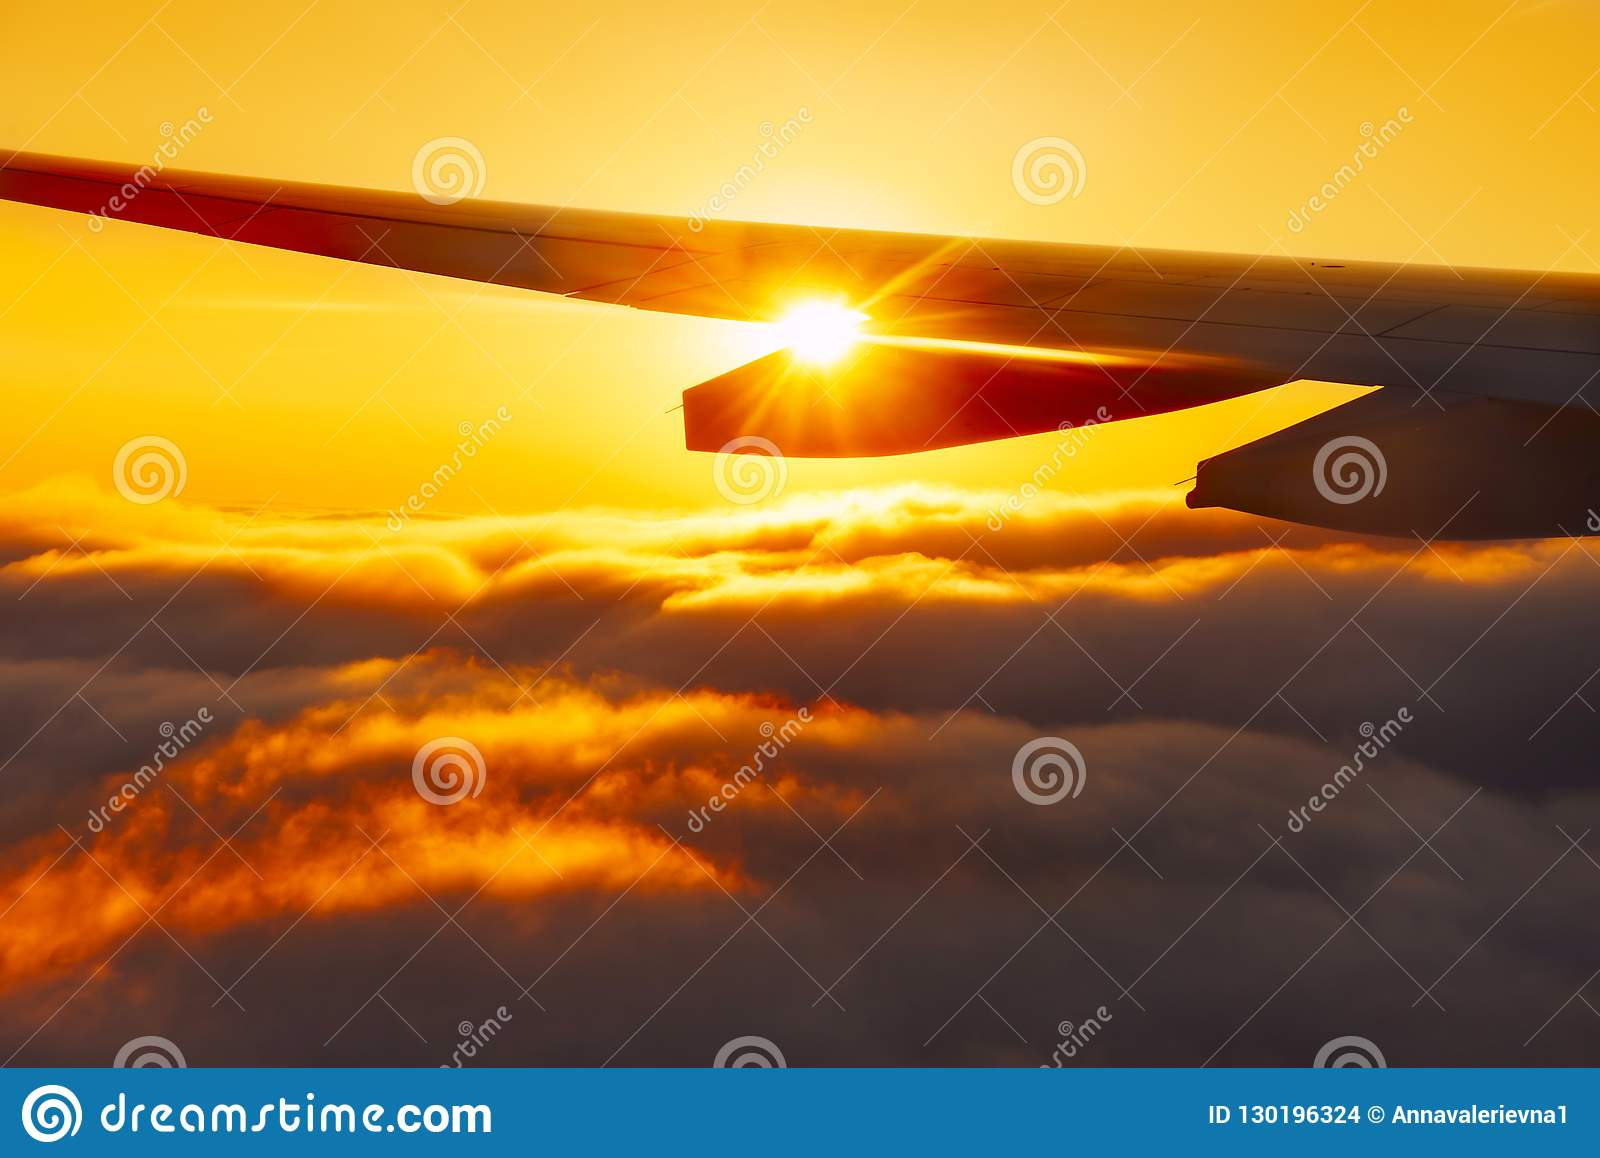 The sun is shining through the wing of the plane above the clouds in flight at sunset. The atmosphere of travel and vacation.